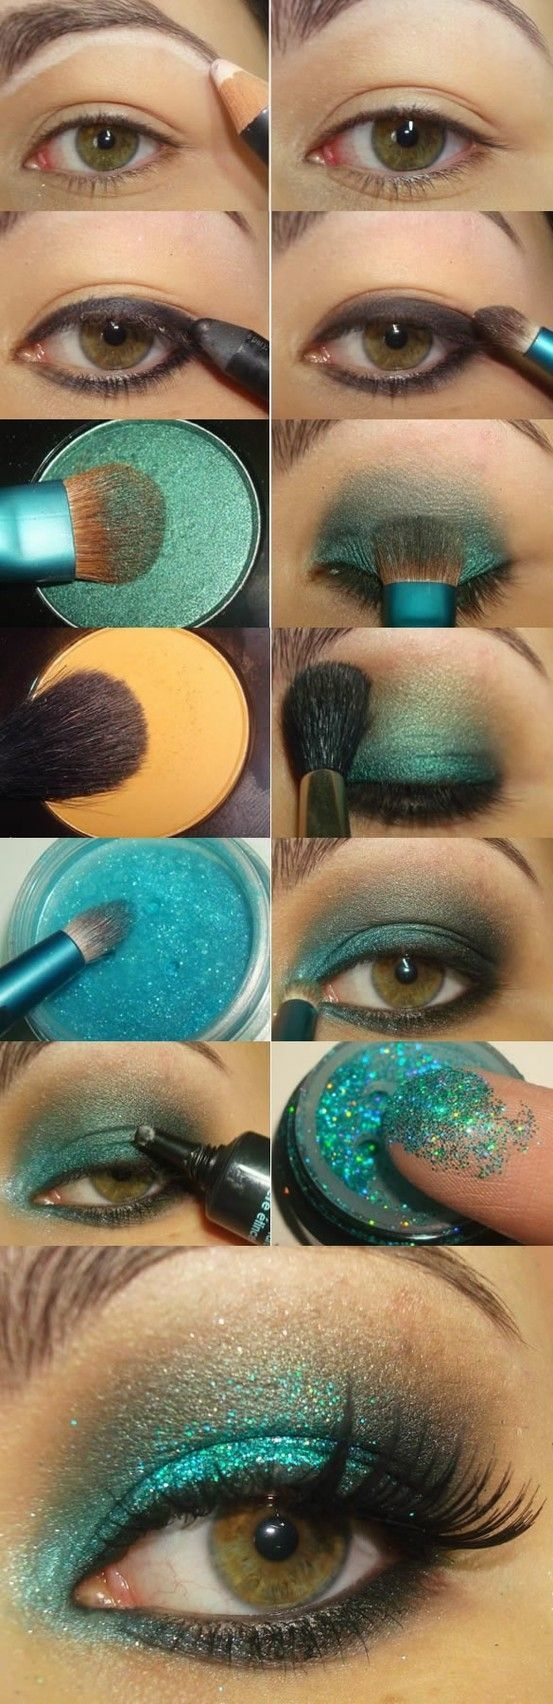 Photo of 11 Simple Step-by-Step Instructions for Beginners Ideas for Eye Makeup Tips